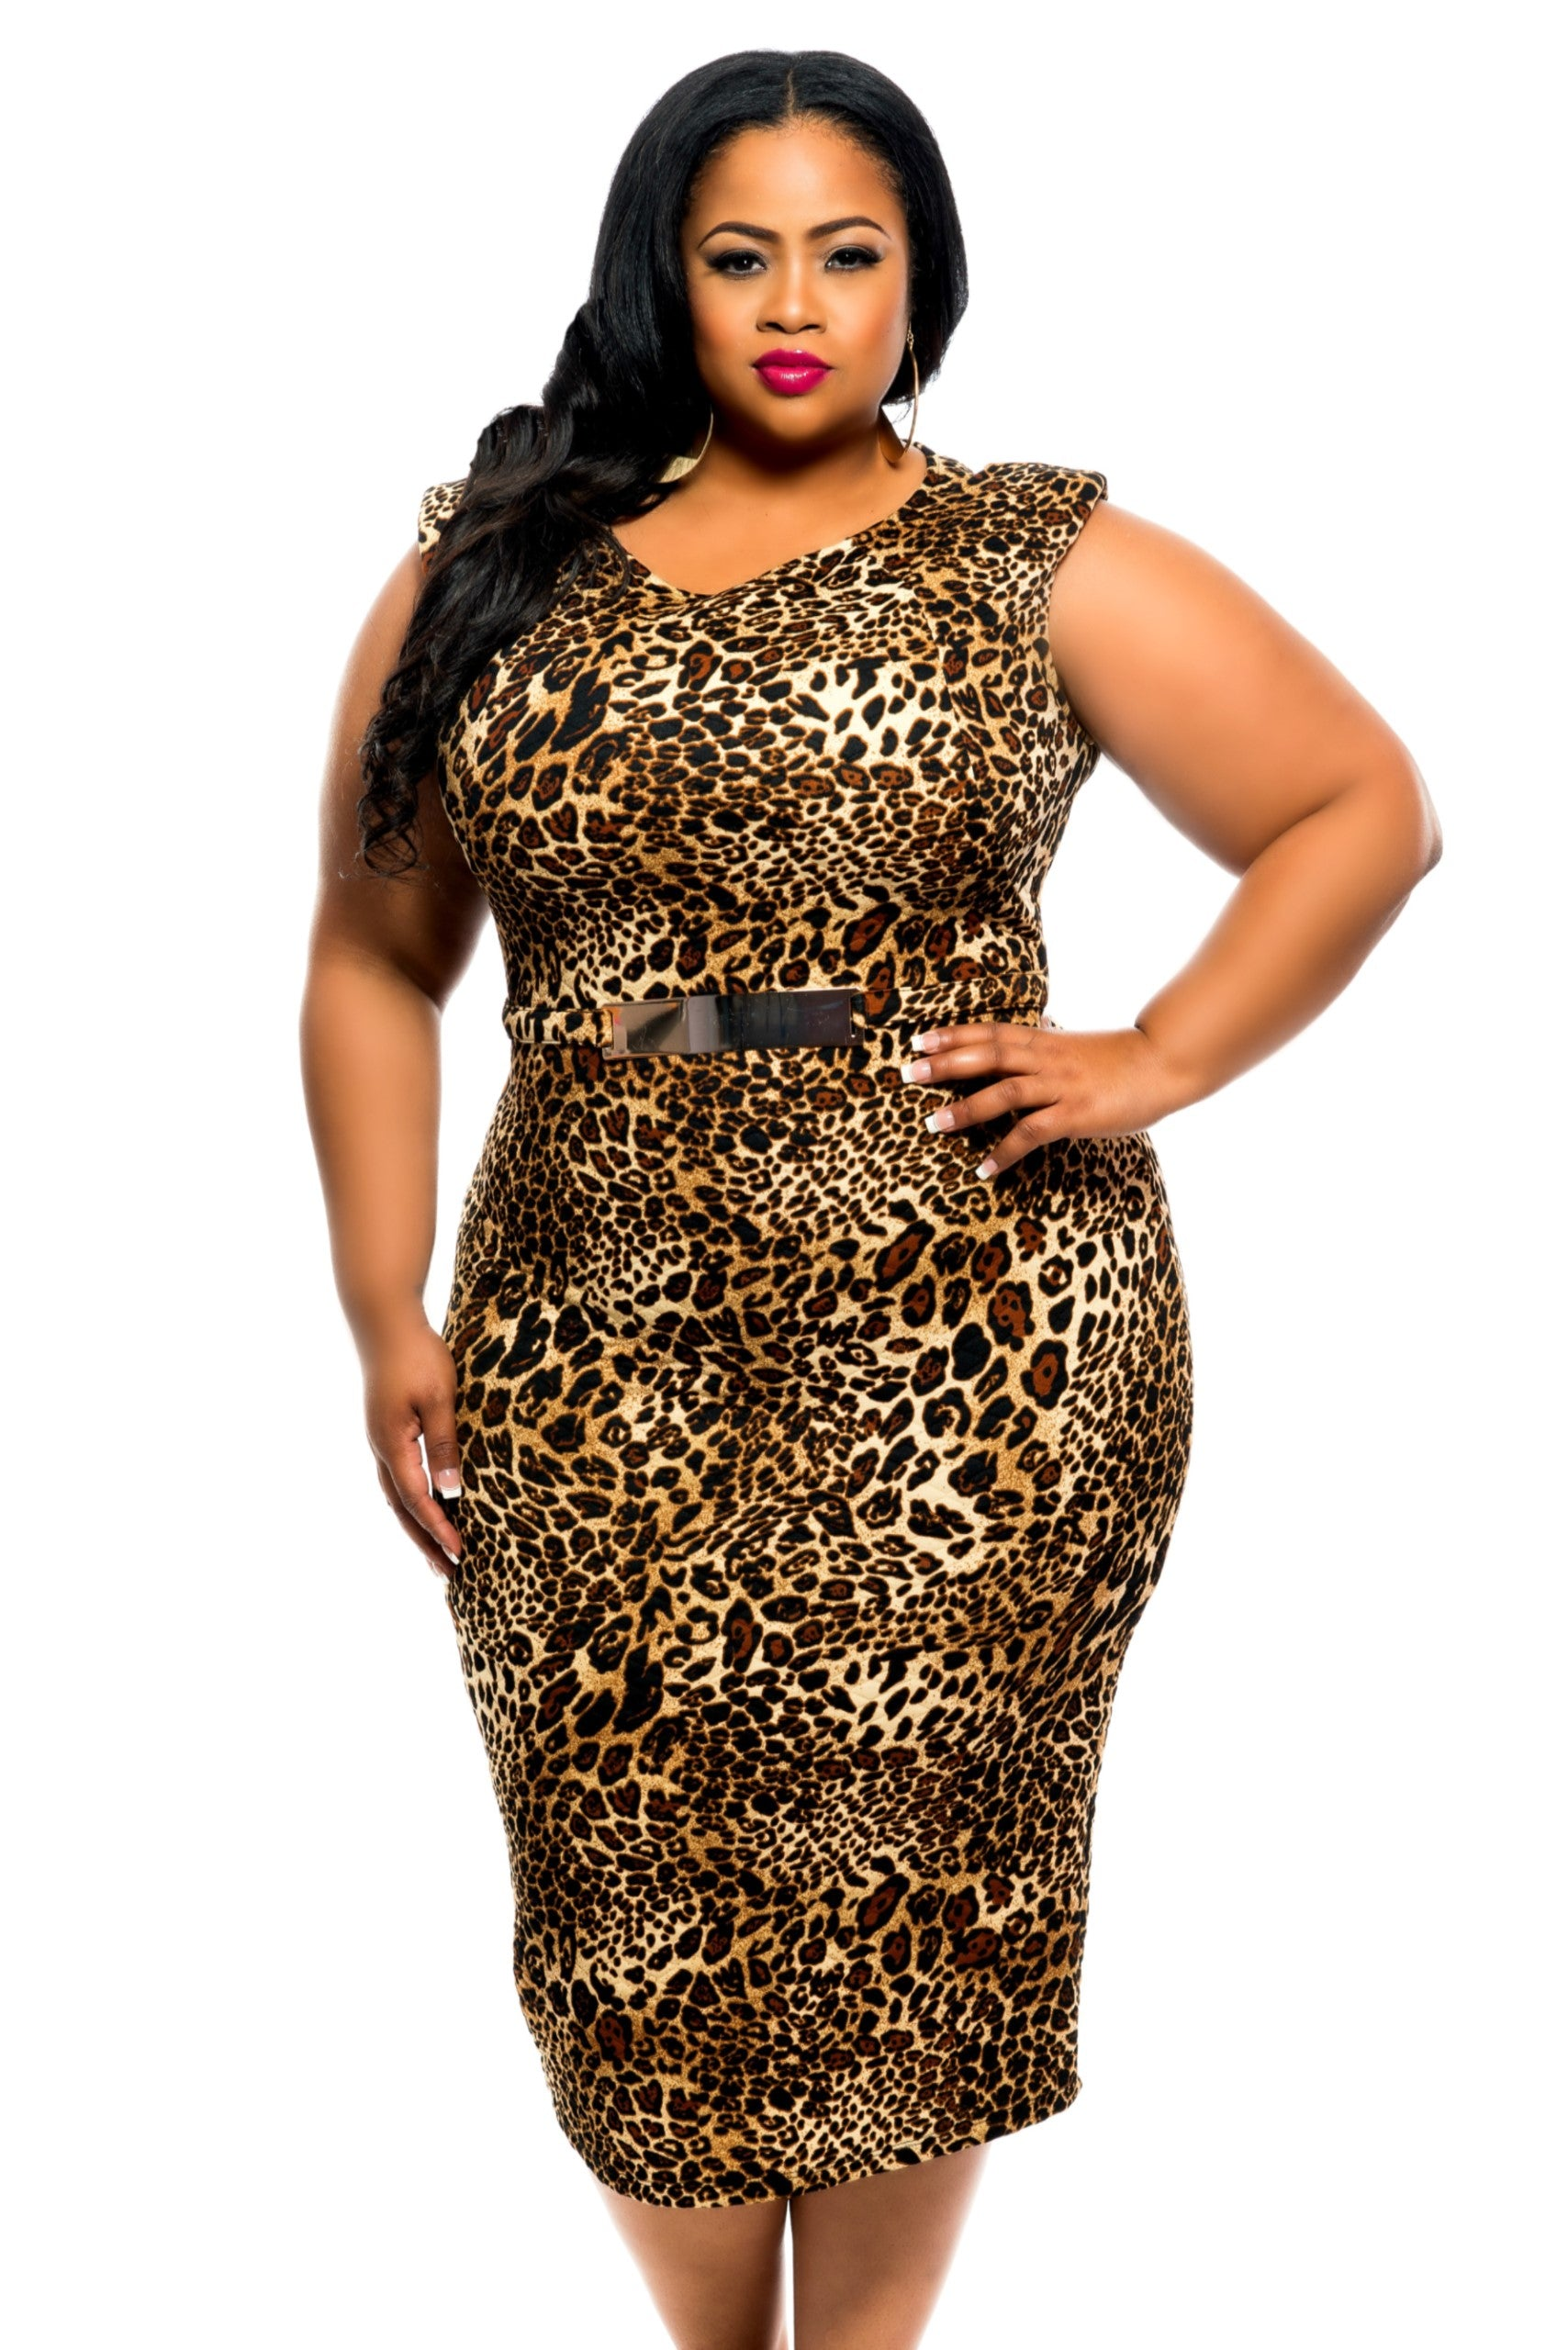 New Plus Size BodyCon with Attached Faux Belt, Sleeveless in Cheetah Print